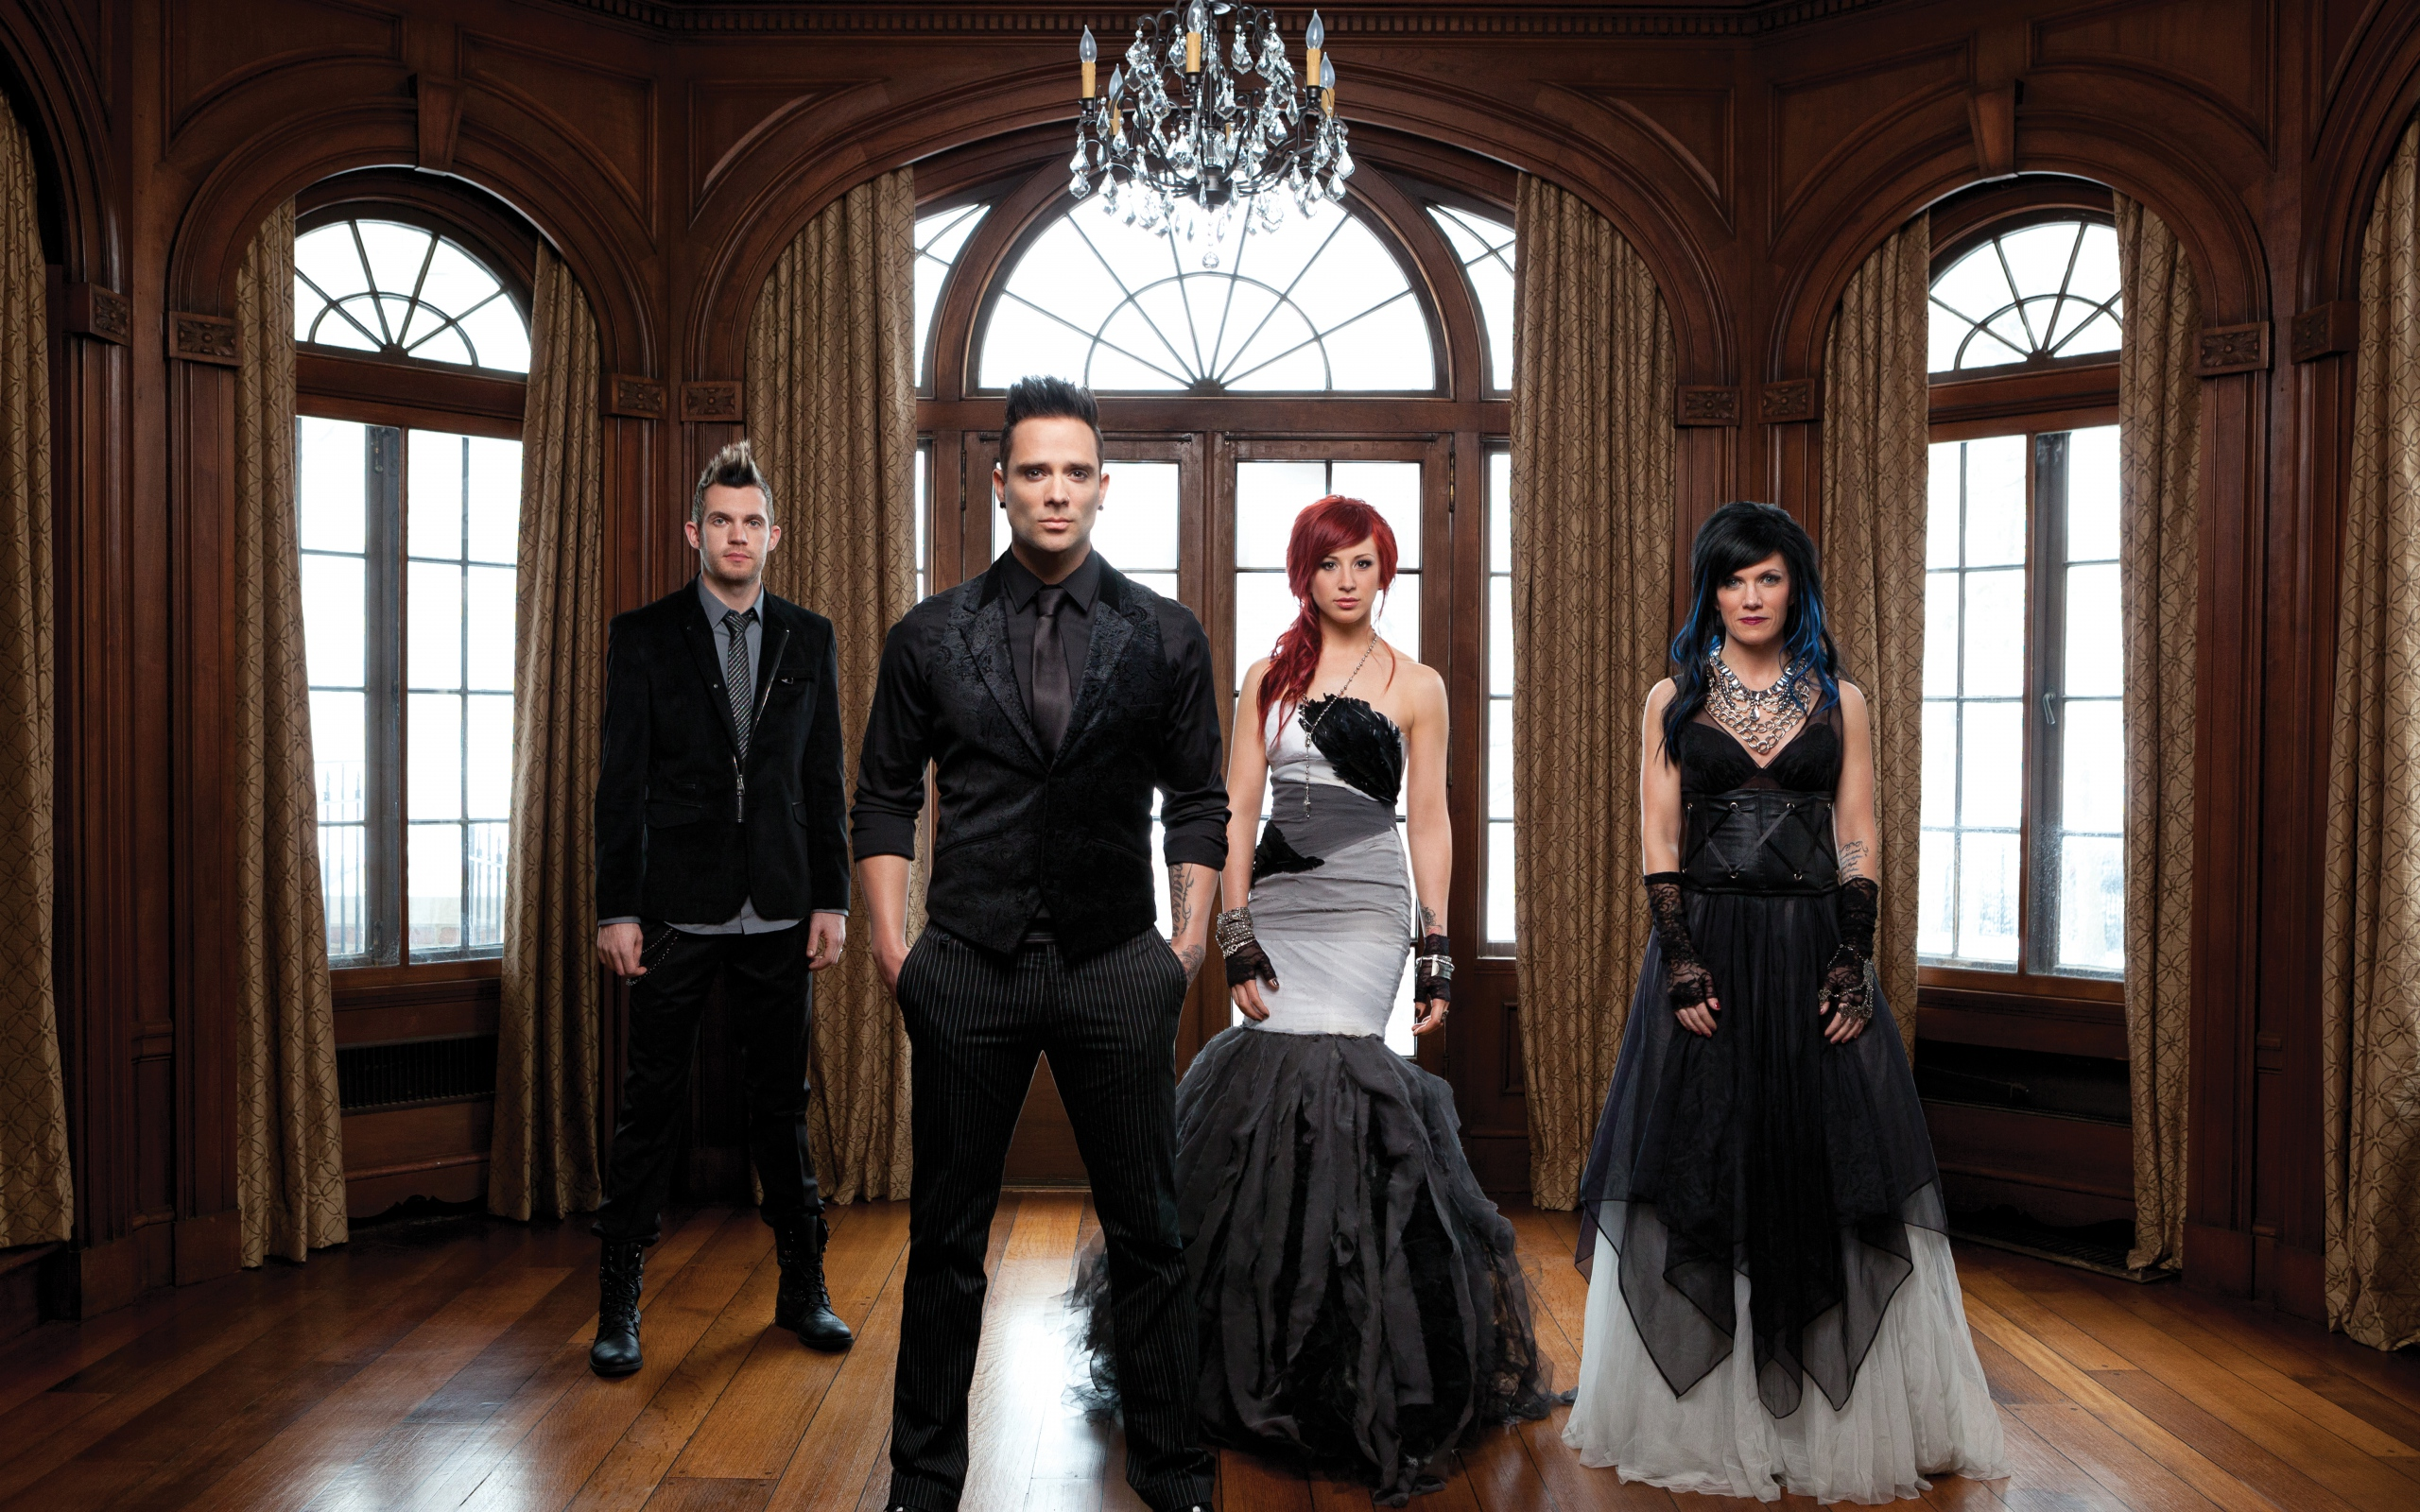 Wallpaper Skillet Jen Ledger Christian Rock John Cooper Desktop